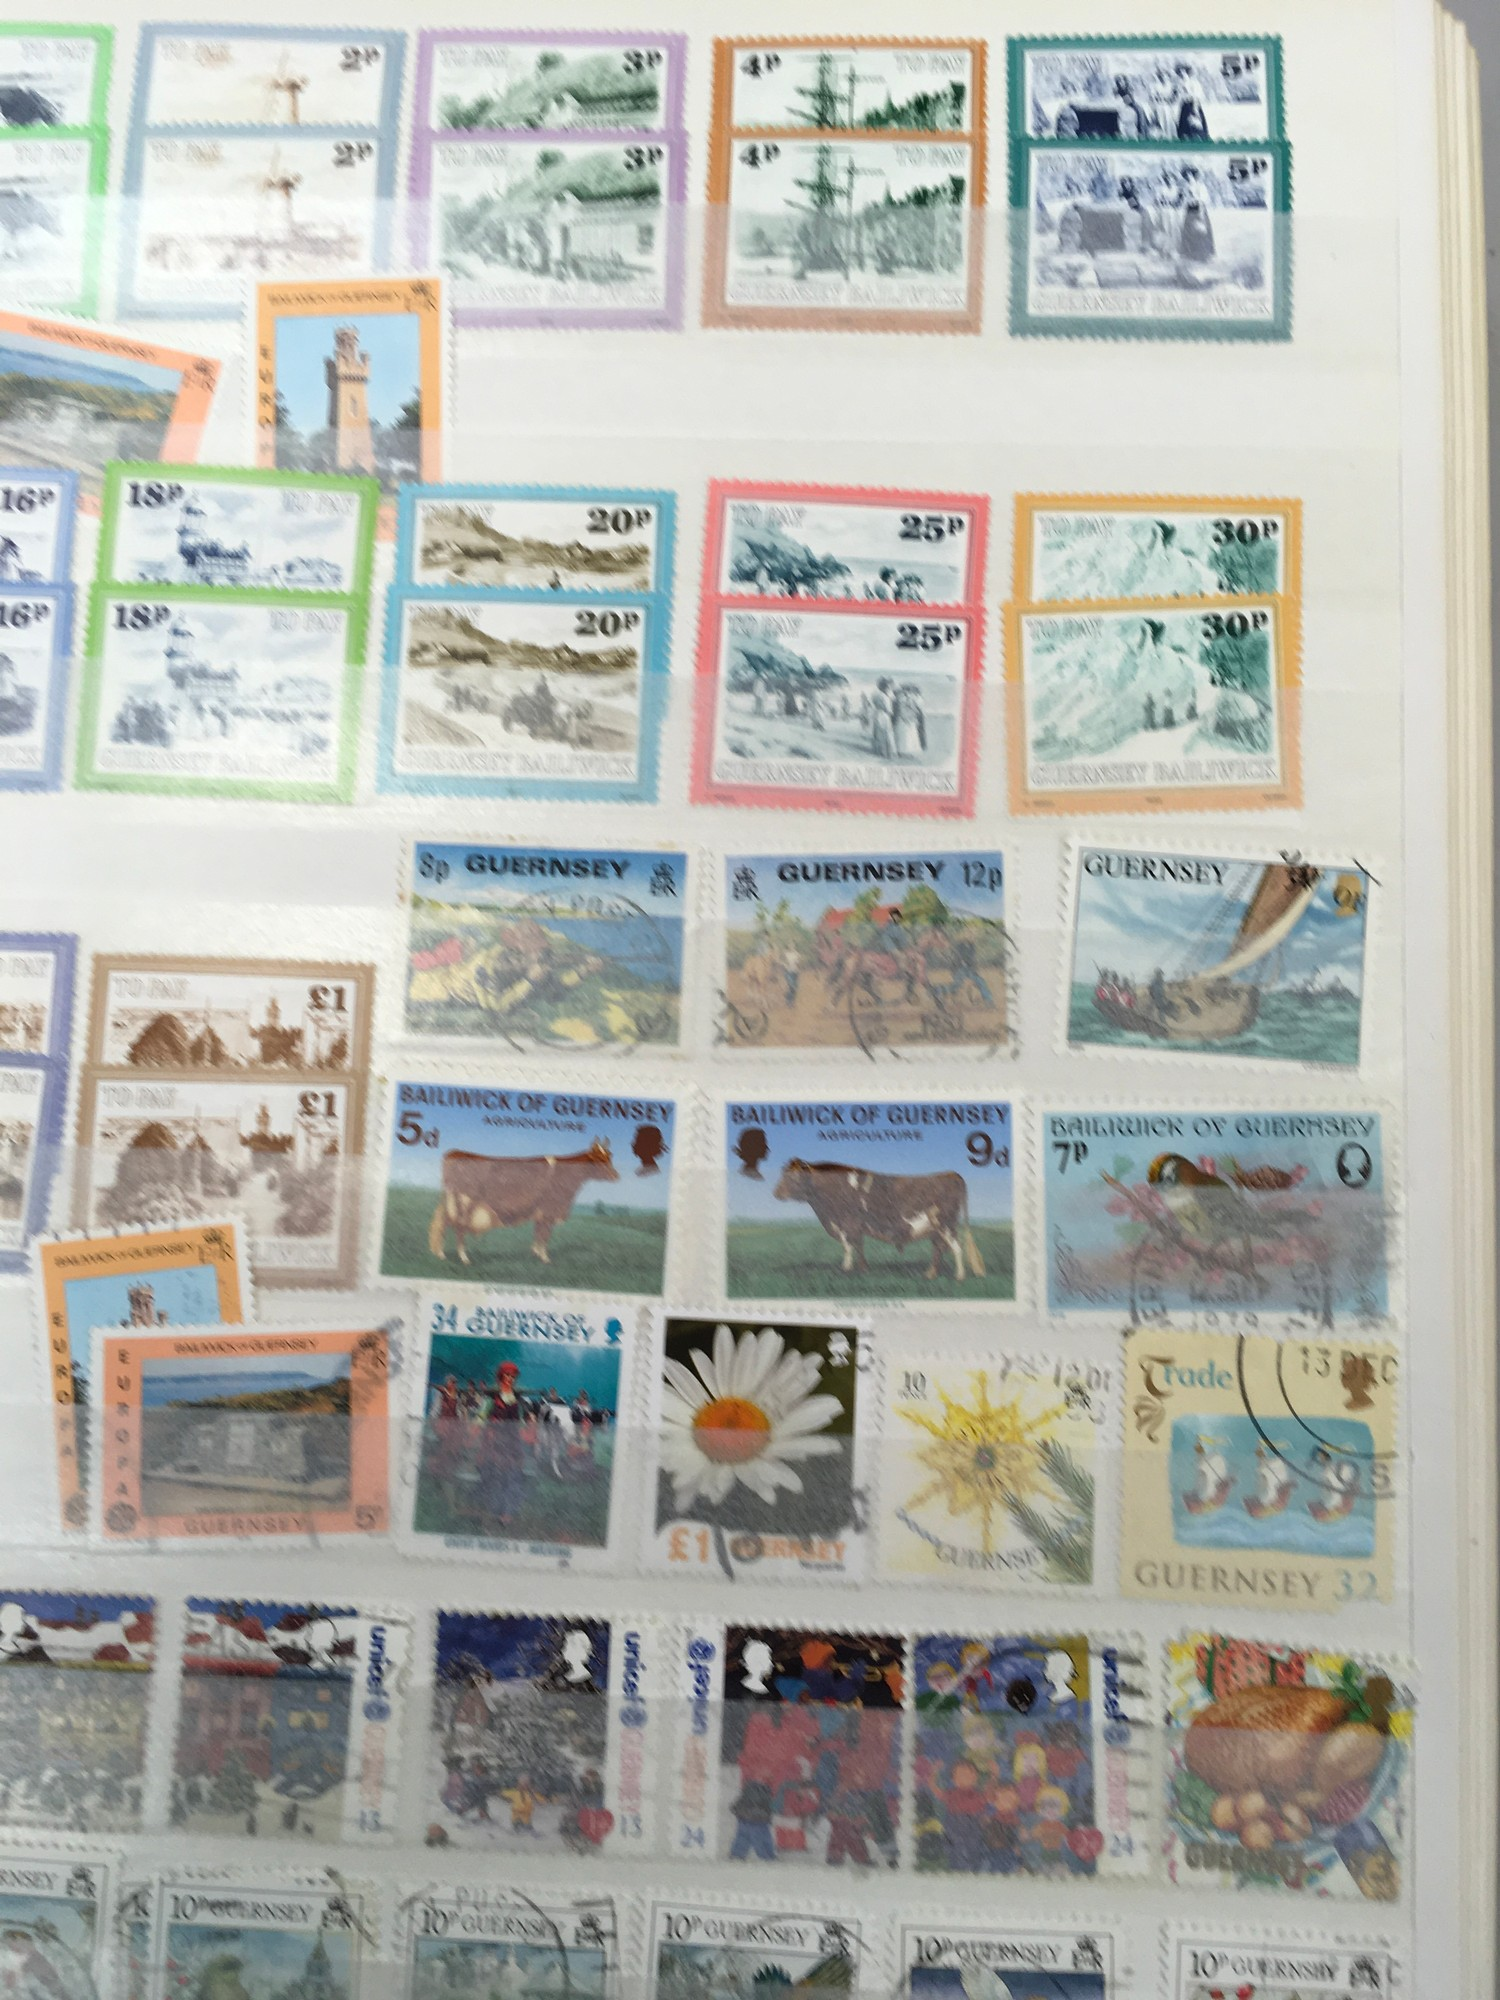 3 x Albums containing Channel Islands, Jersey Guernsey and Alderney over £800 in mint stamps. - Image 2 of 21